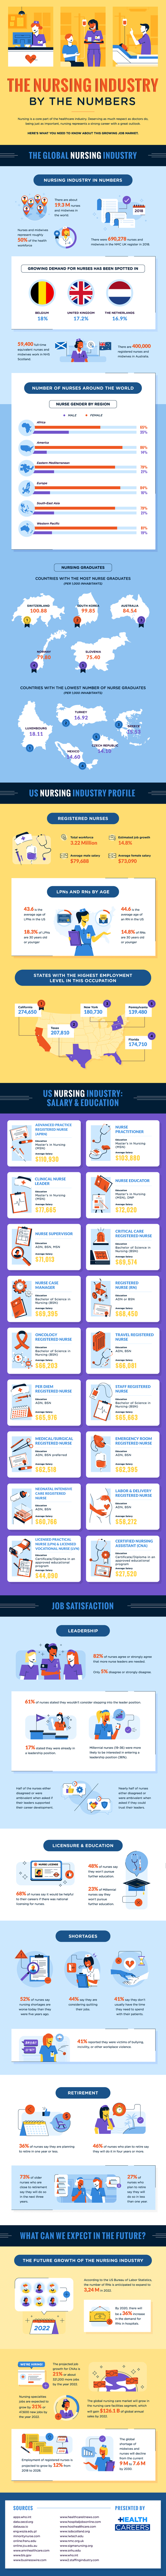 Nursing Statistics: Industry by the Numbers